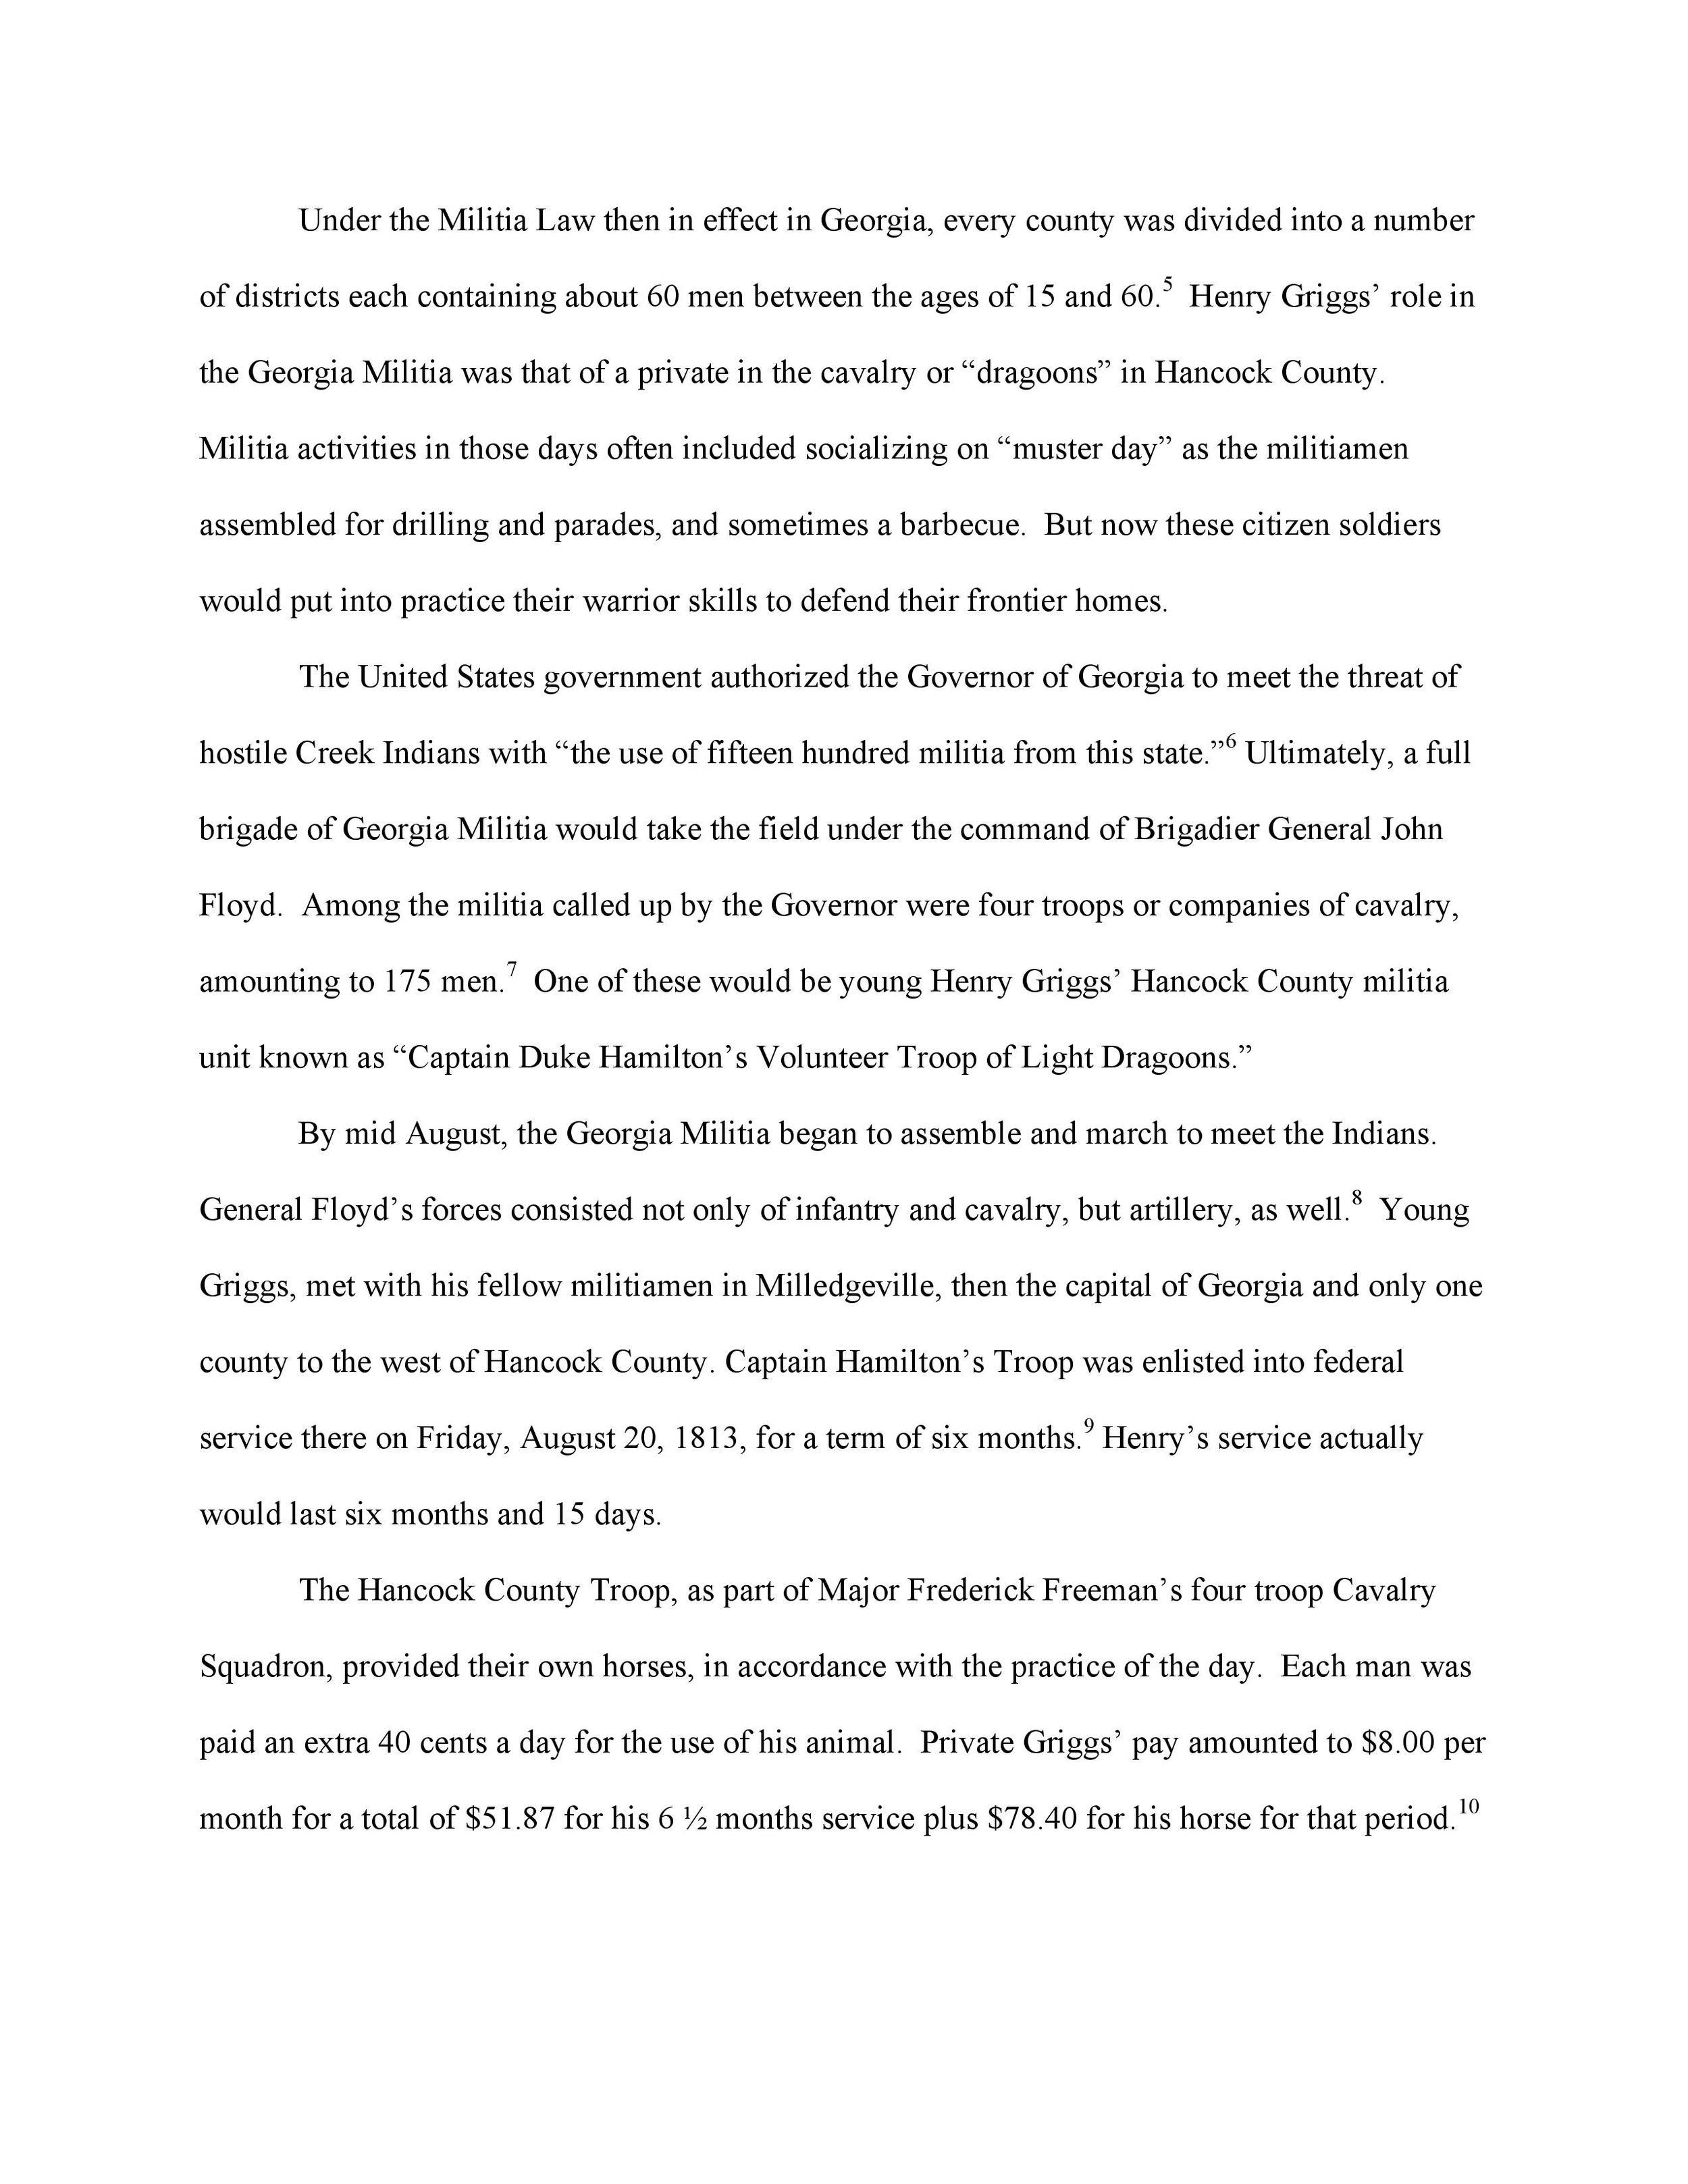 Henry Griggs: Bio, Page 2